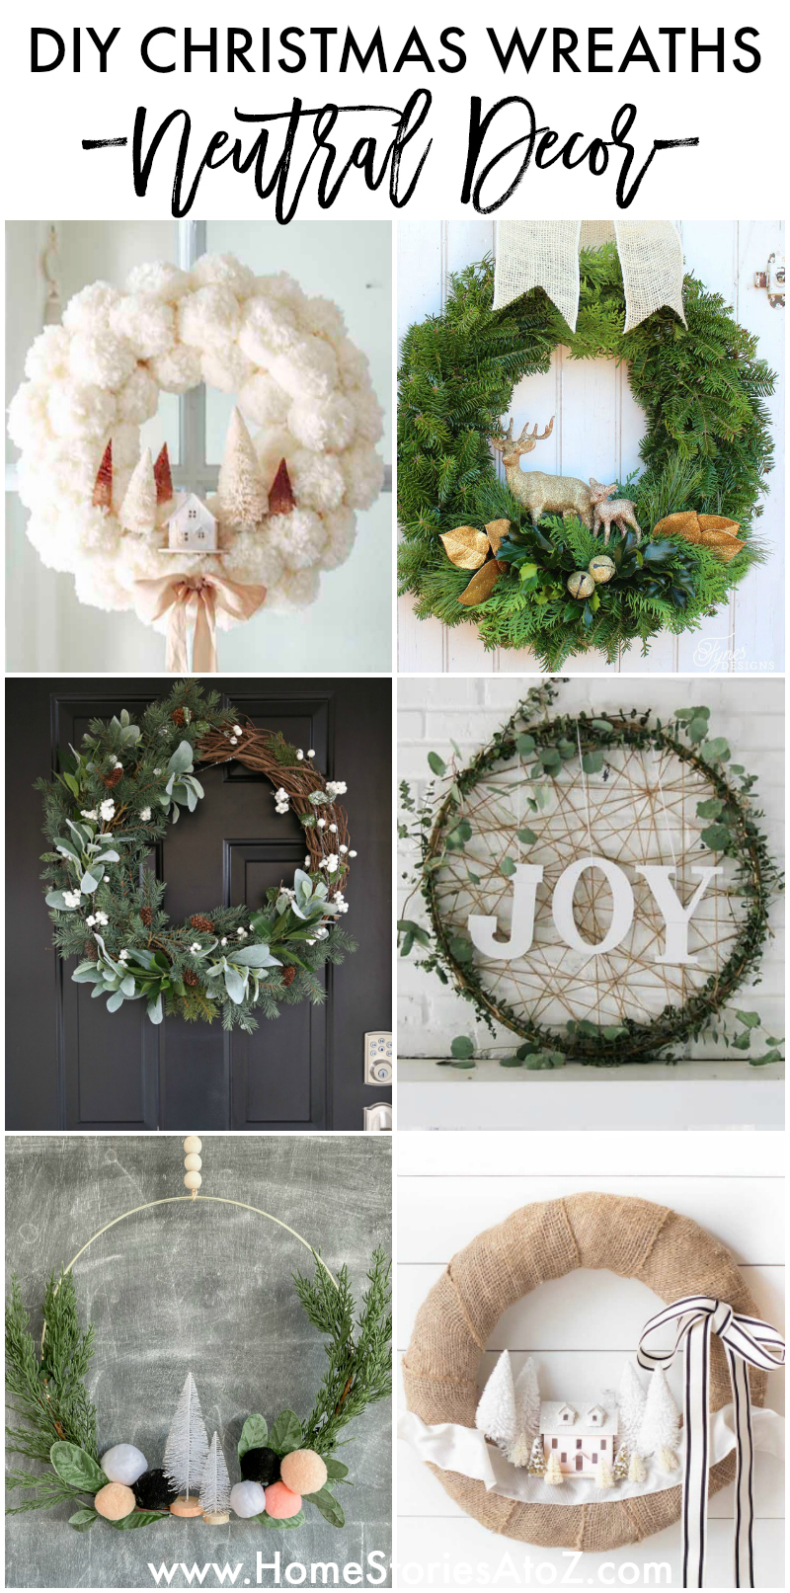 DIY Christmas Wreaths - Neutral Decor